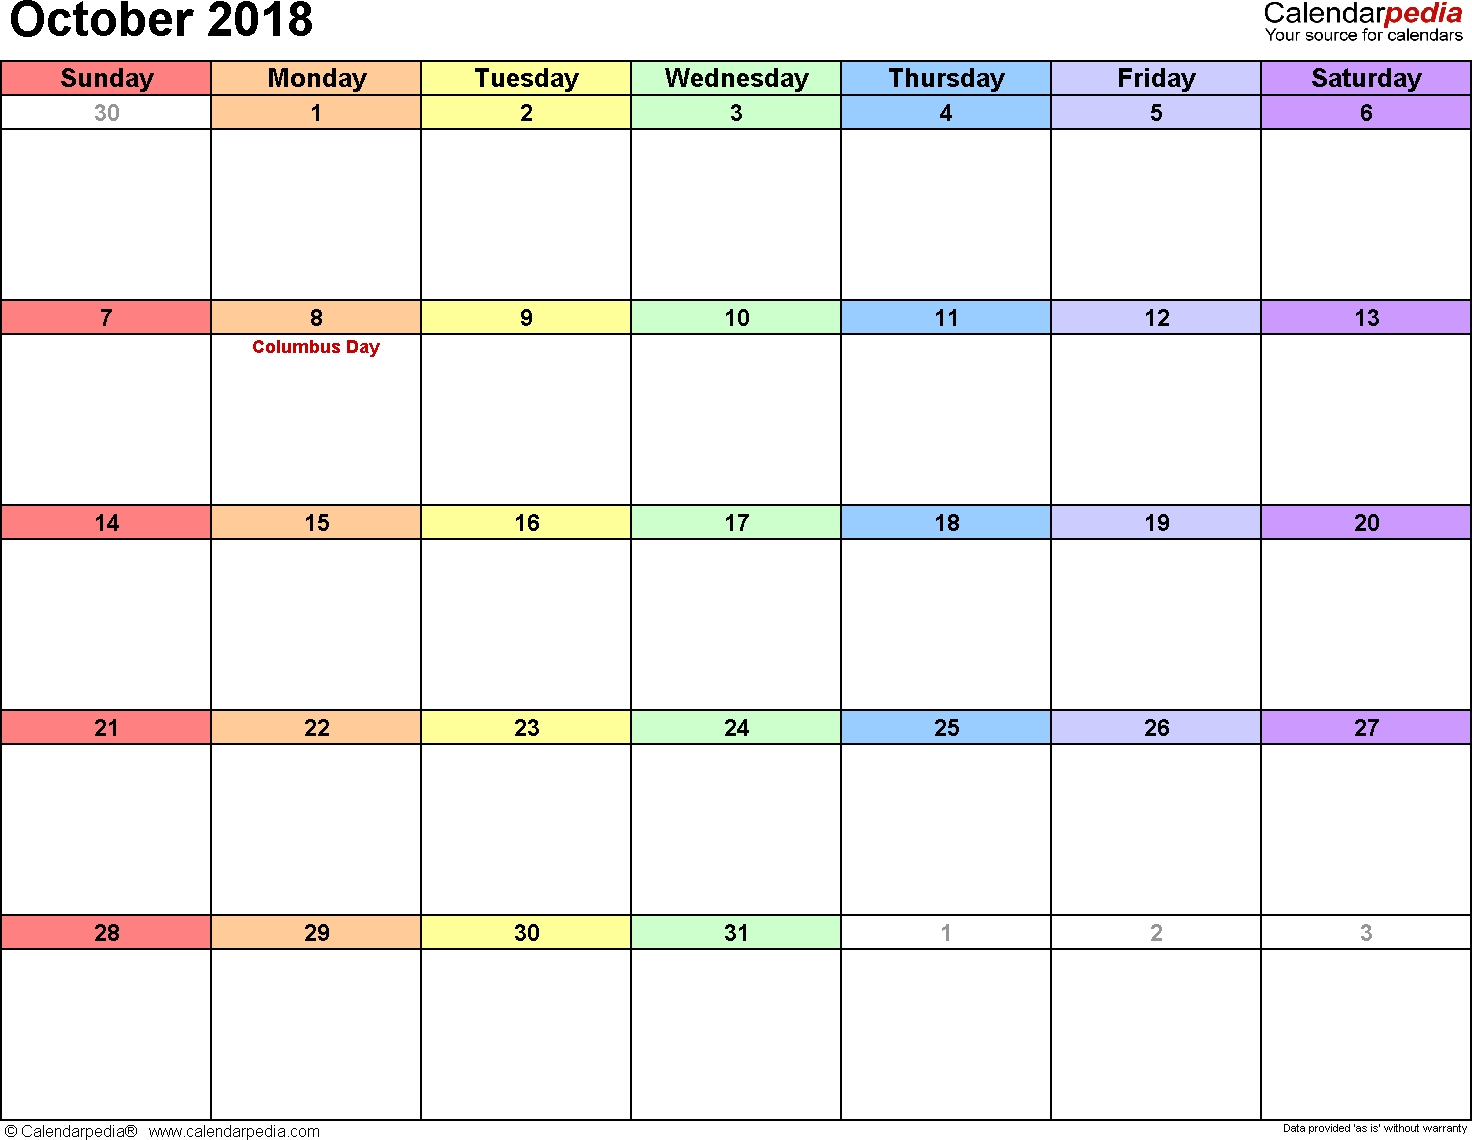 October 2018 Calendars For Word, Excel & Pdf with regard to Monthly Calendar - Vacation Themed